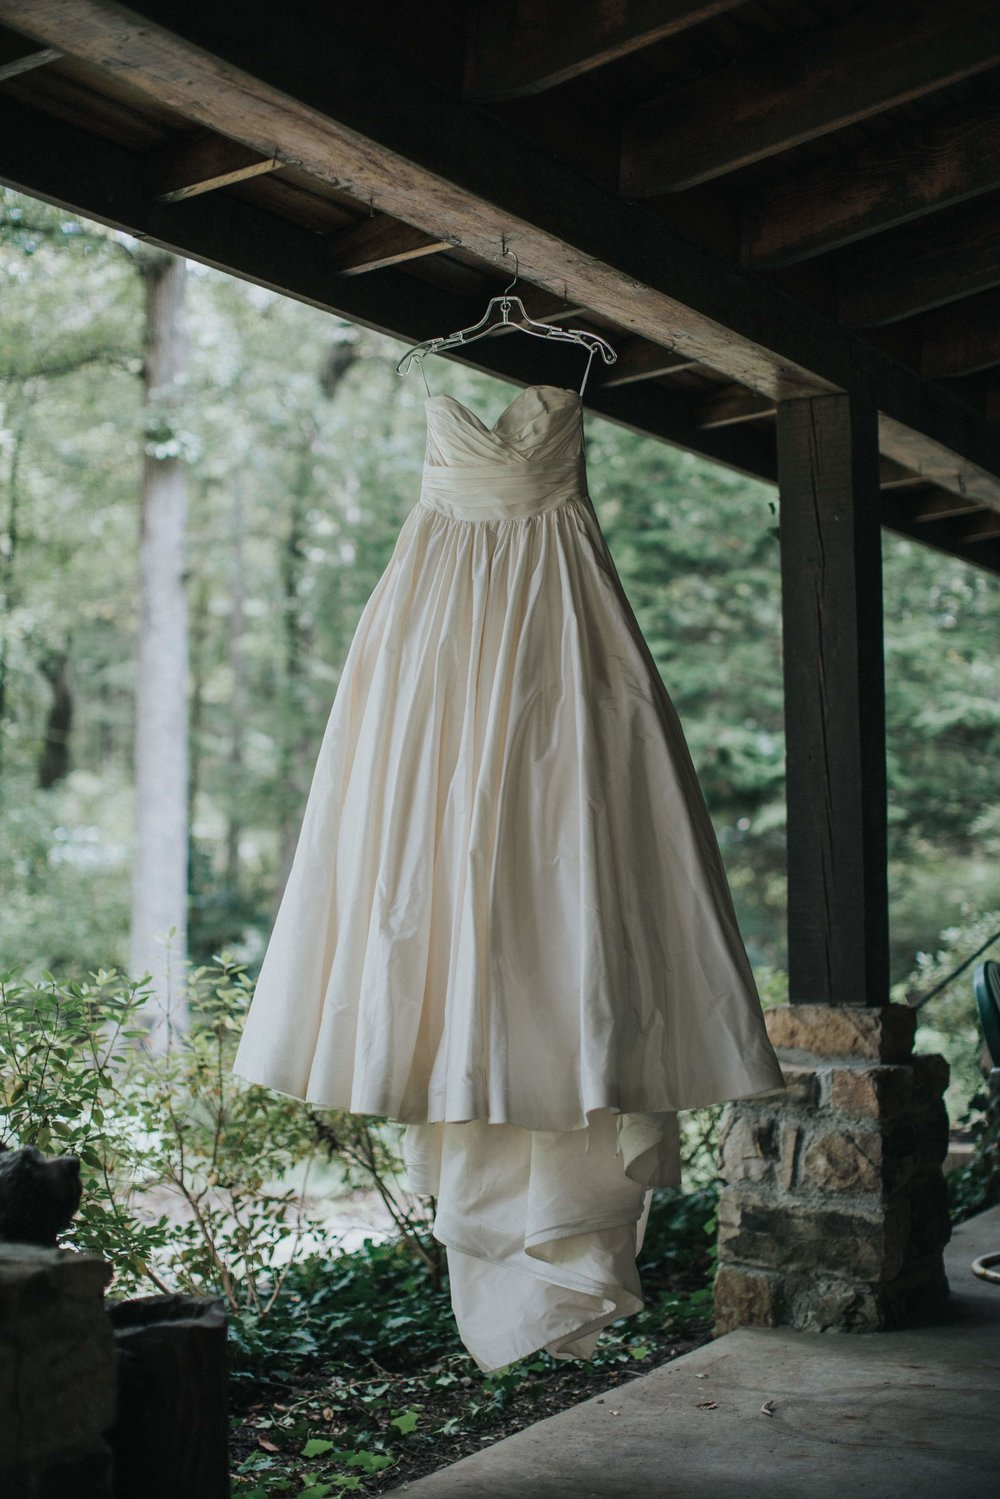 Bride's wedding dress for rustic wedding in Farmington, PA planned by Exhale Events. Find more wedding inspiration at exhale-events.com!